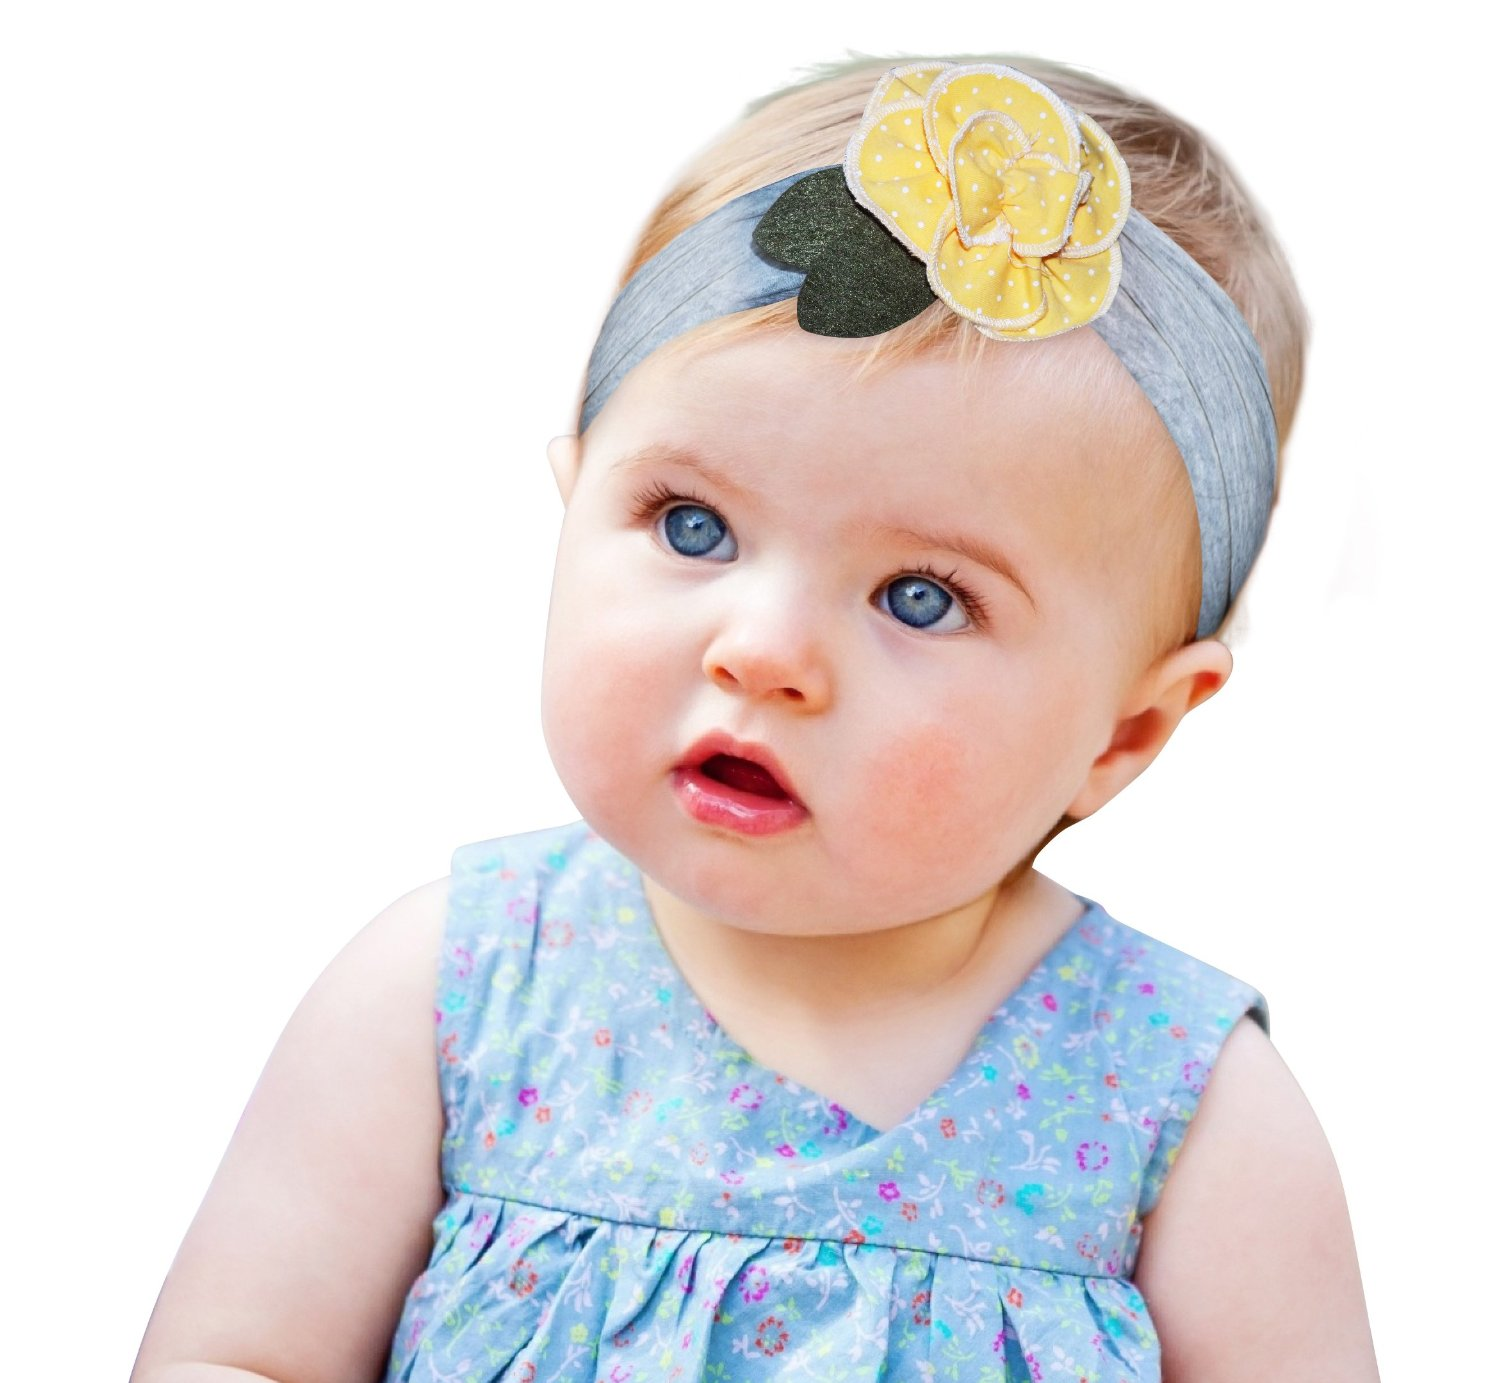 Get Quotations · Flower Baby and Newborn Girls Headband Girl s Fashion Soft  Headbands Super Soft and Stretchy Headbands for 3db3e9adde7